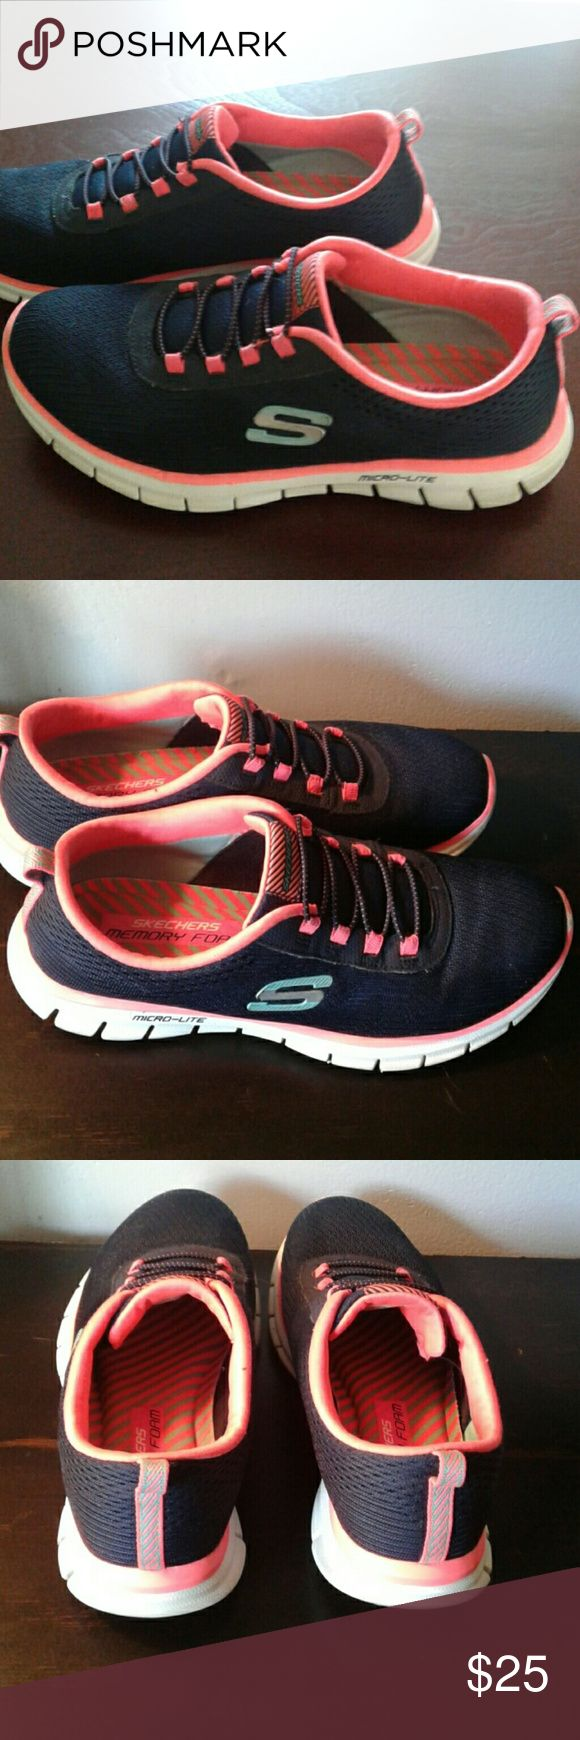 💕Skechers💕 Micro-Lite Memory Foam Sneakers I have a great pair of Skechers Micro-Lite Memory Foam sneakers. These are SUPER comfortable!  Unfortunately, they are a tad too small for me. Only worn a handful of times and are in very good condition. Skechers Shoes Sneakers